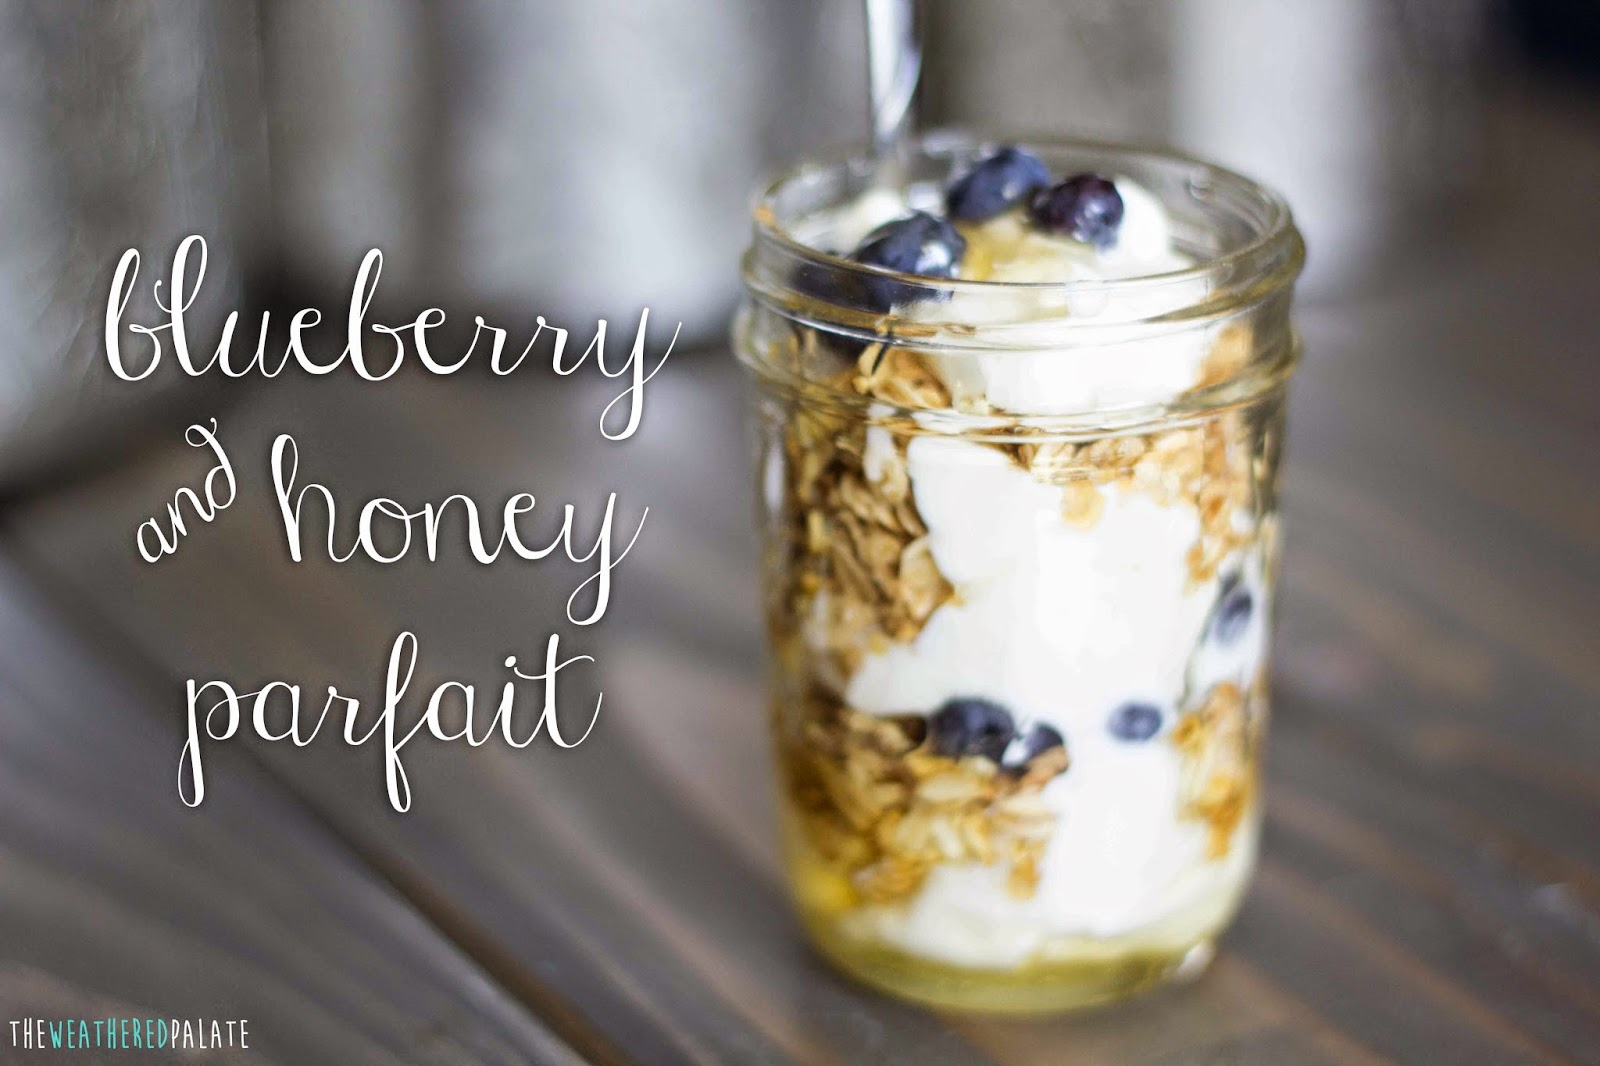 http://www.theweatheredpalate.com/2014/09/blueberry-and-honey-parfait.html